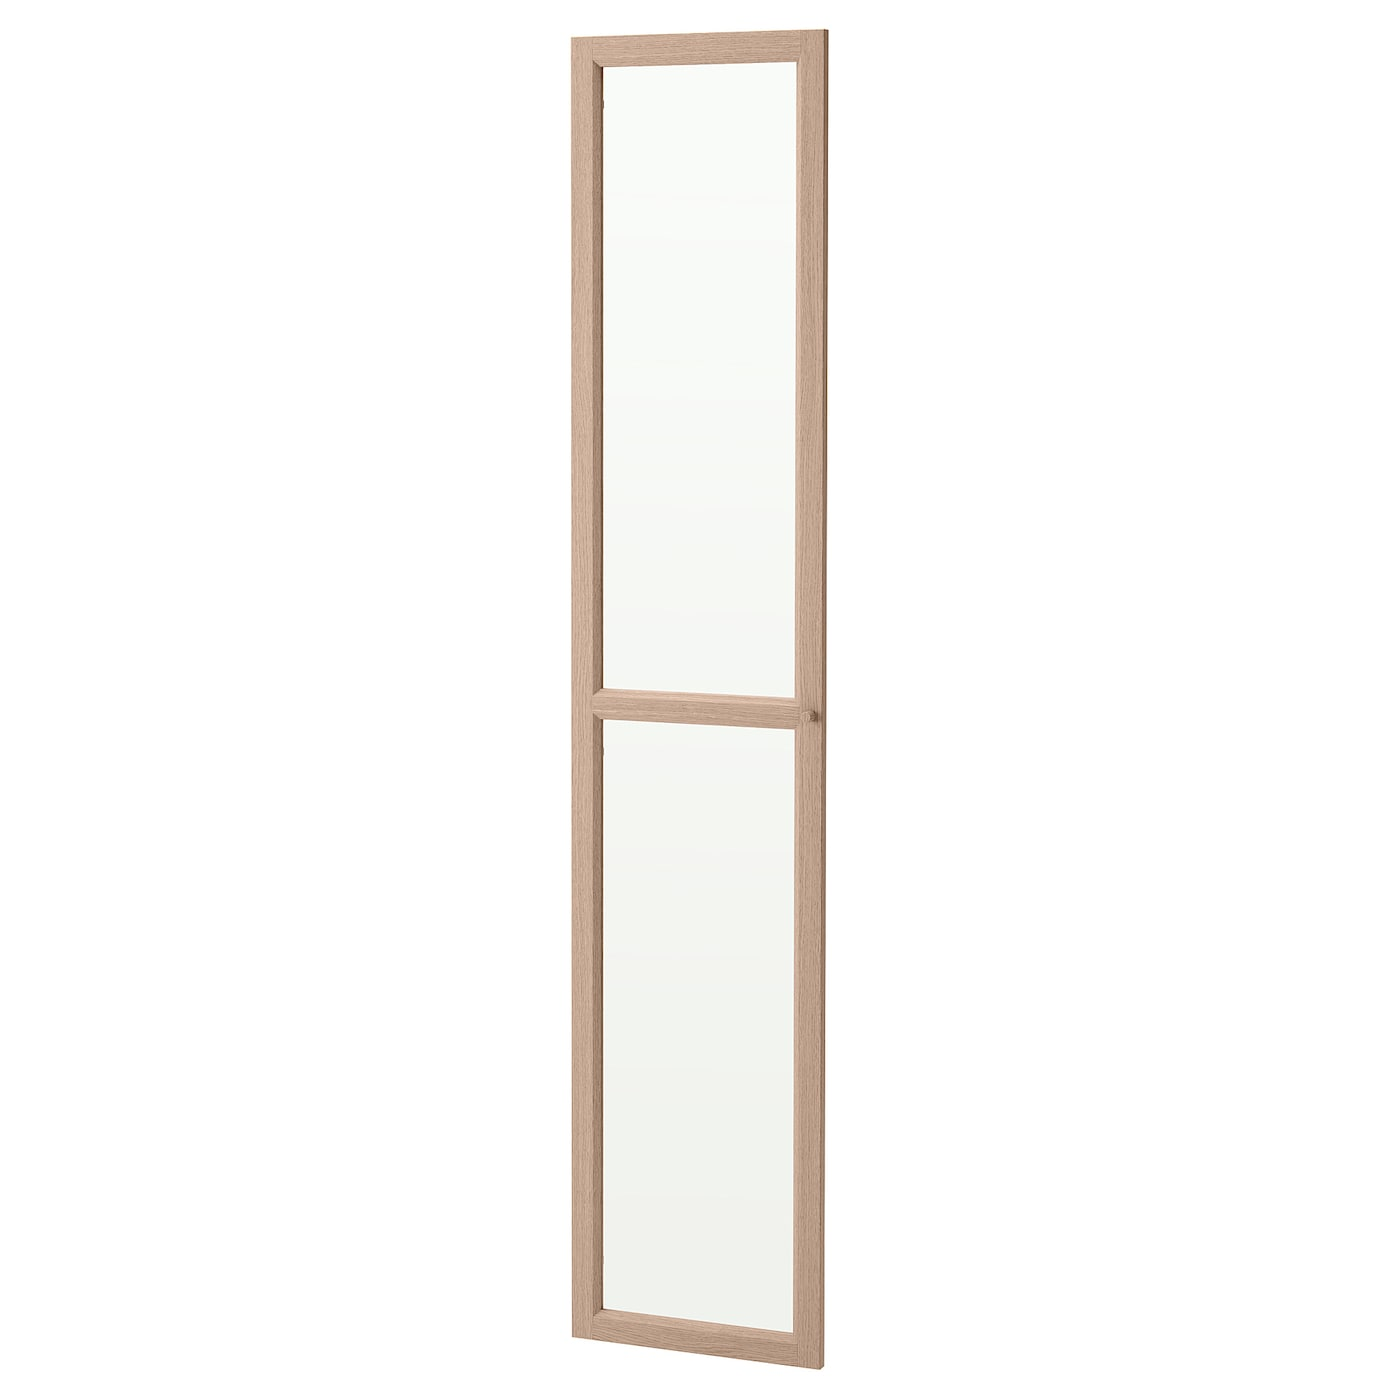 IKEA OXBERG glass door Adjustable hinges allow you to adjust the door horizontally and vertically.